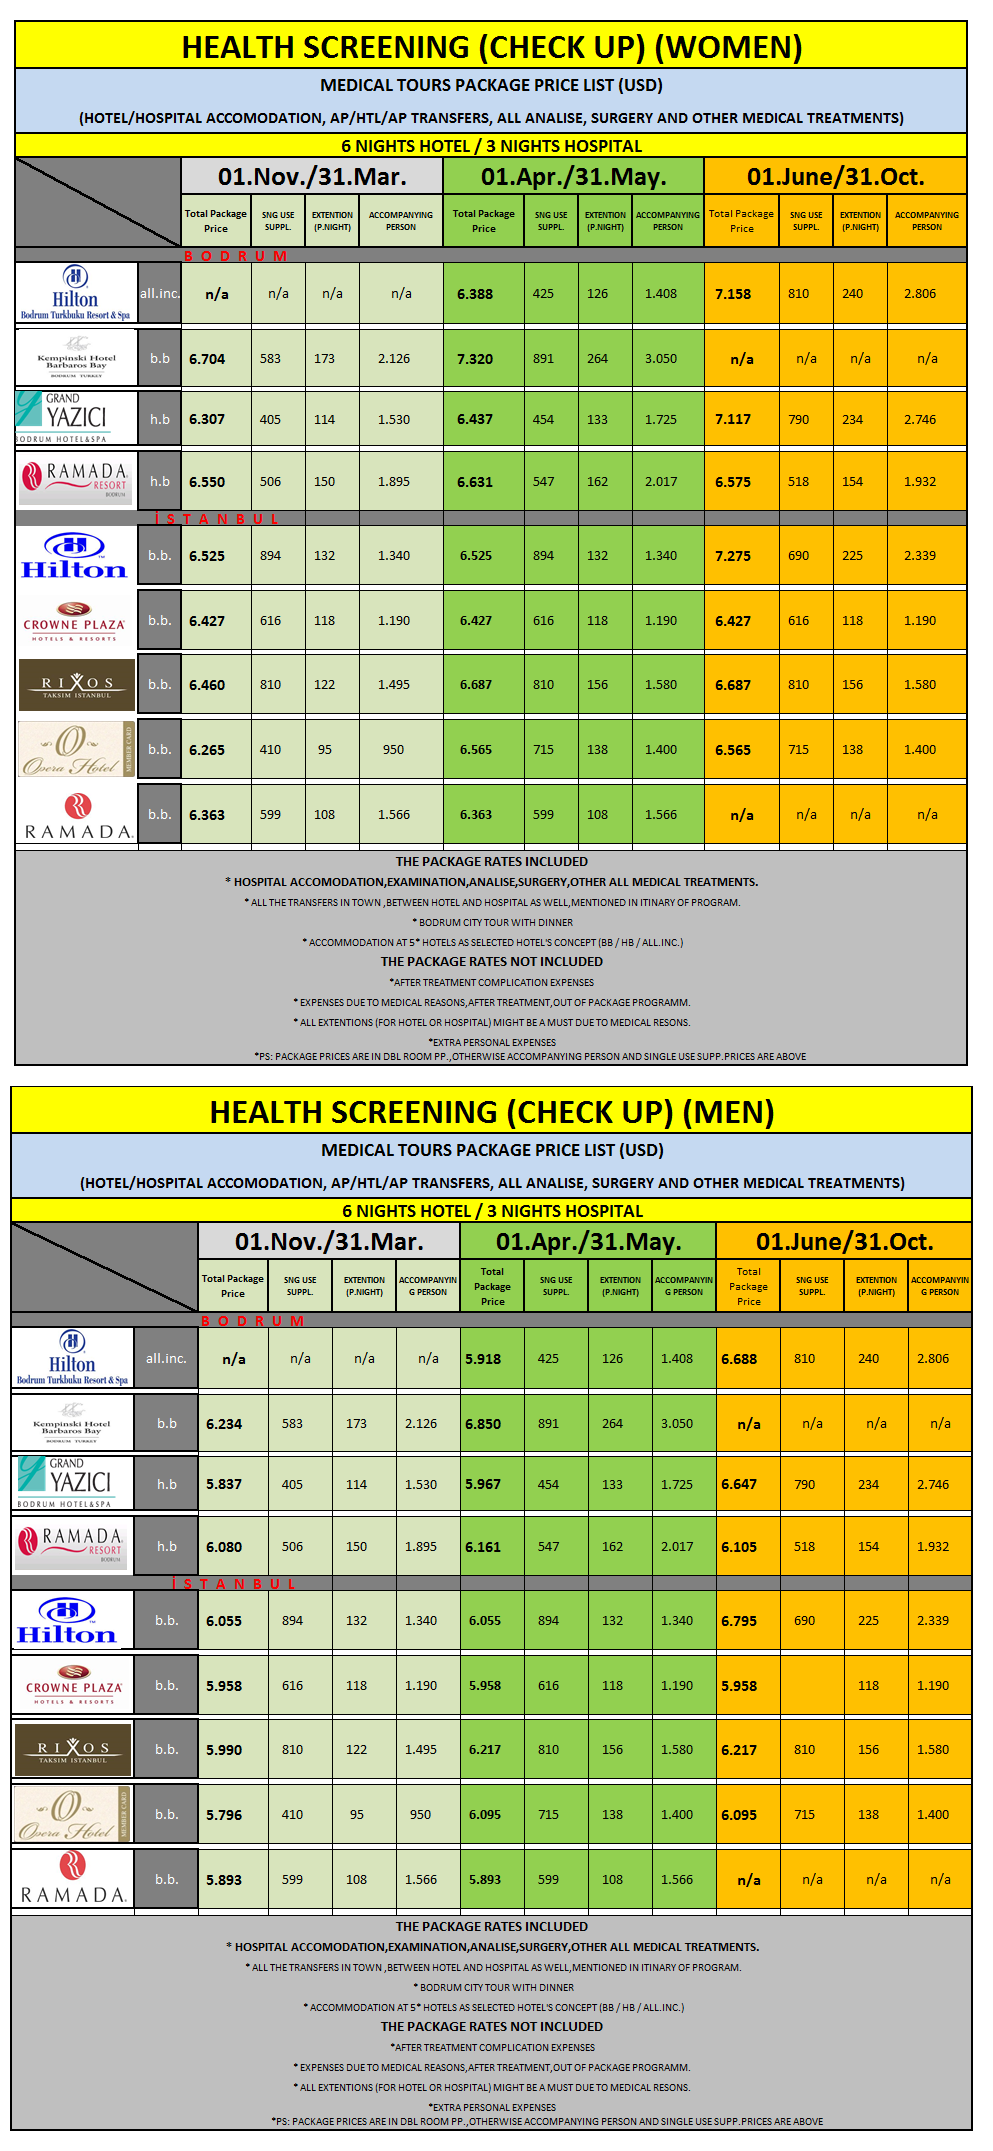 HEALTH SCREENING (CHECK UP) ENG PRICE